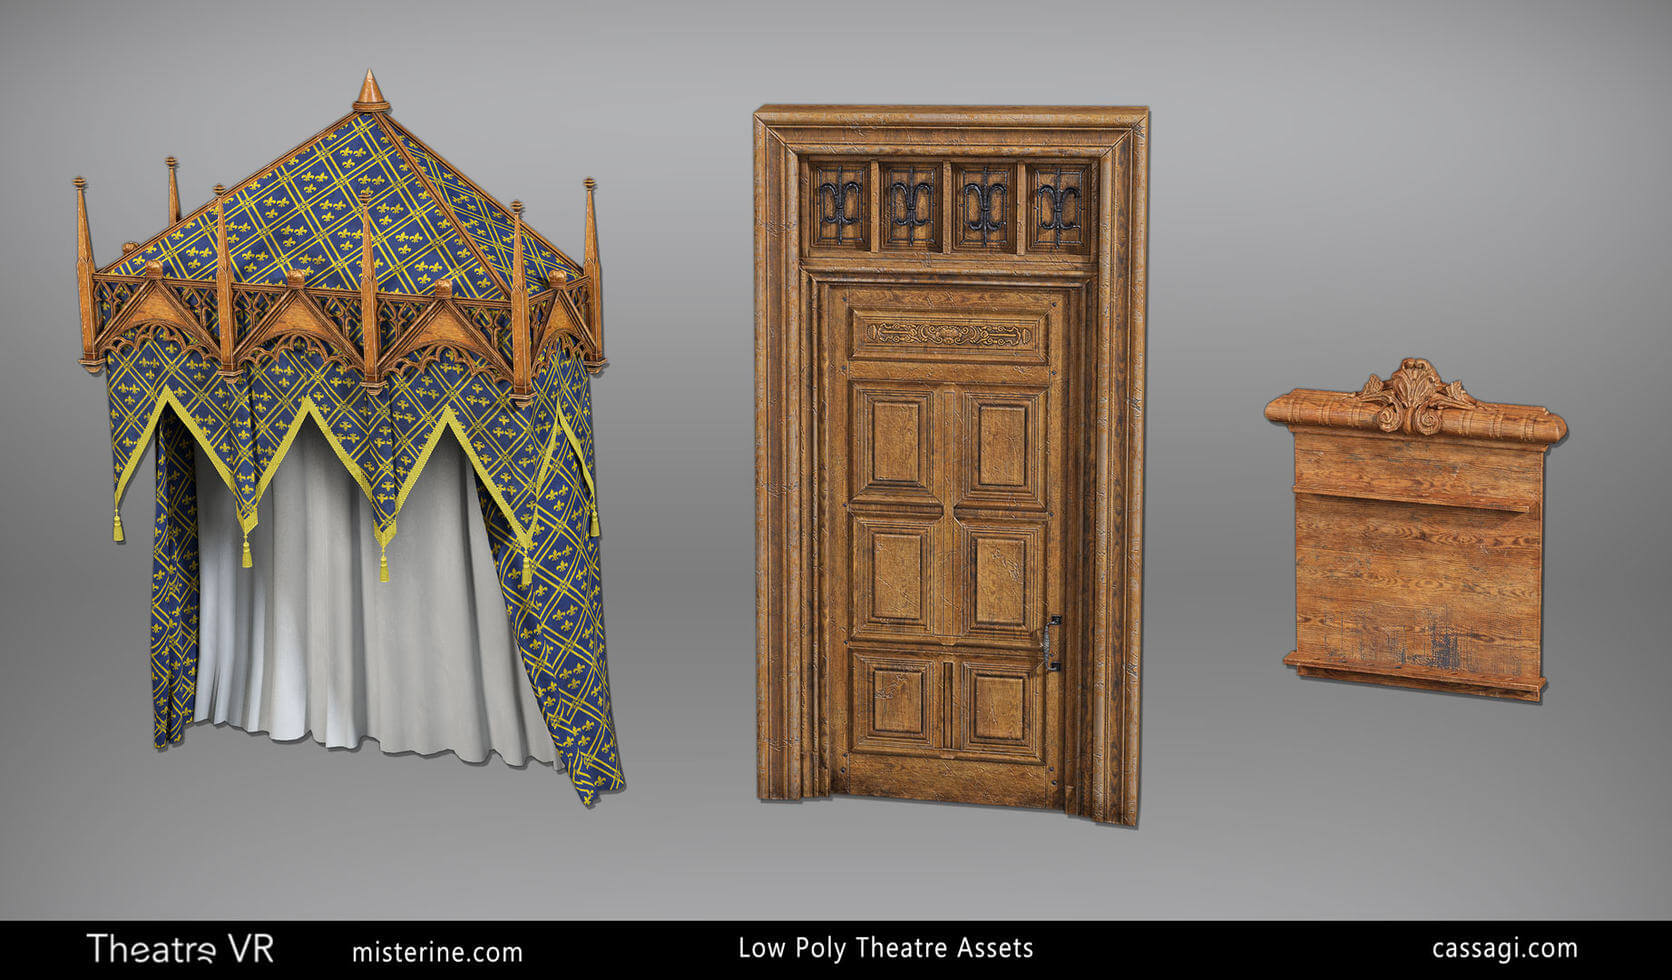 Theatre VR interior game environment props assets